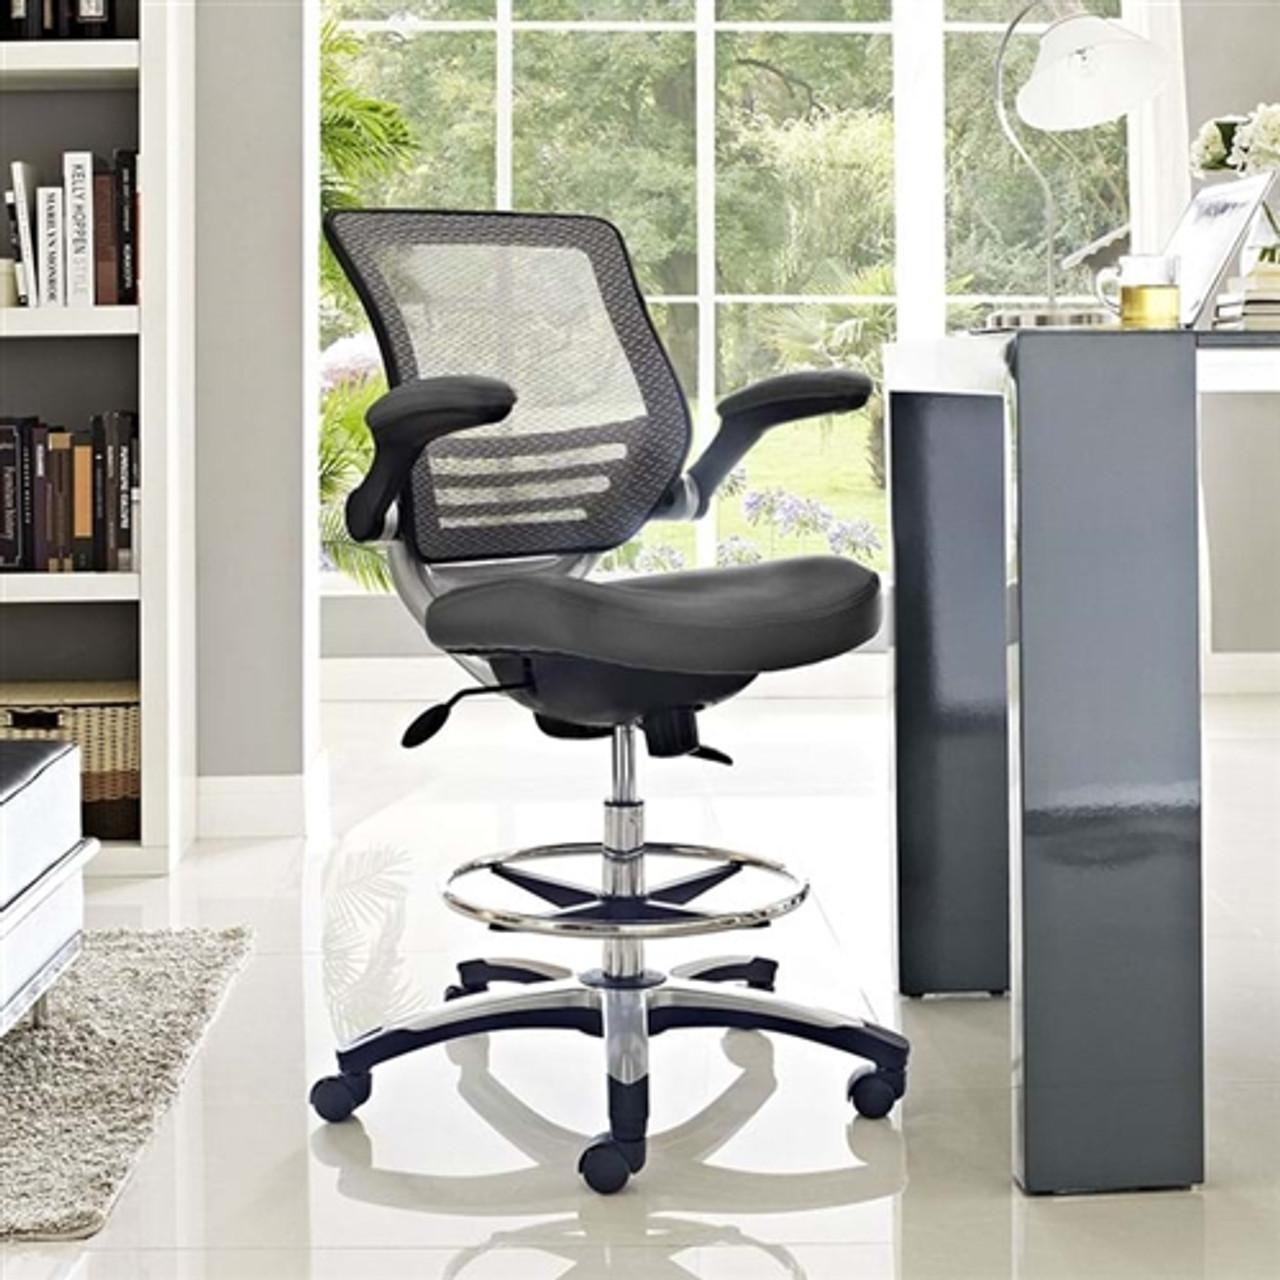 Modway Edge Modern Drafting Stool EEI-41 (41 Colors Options)